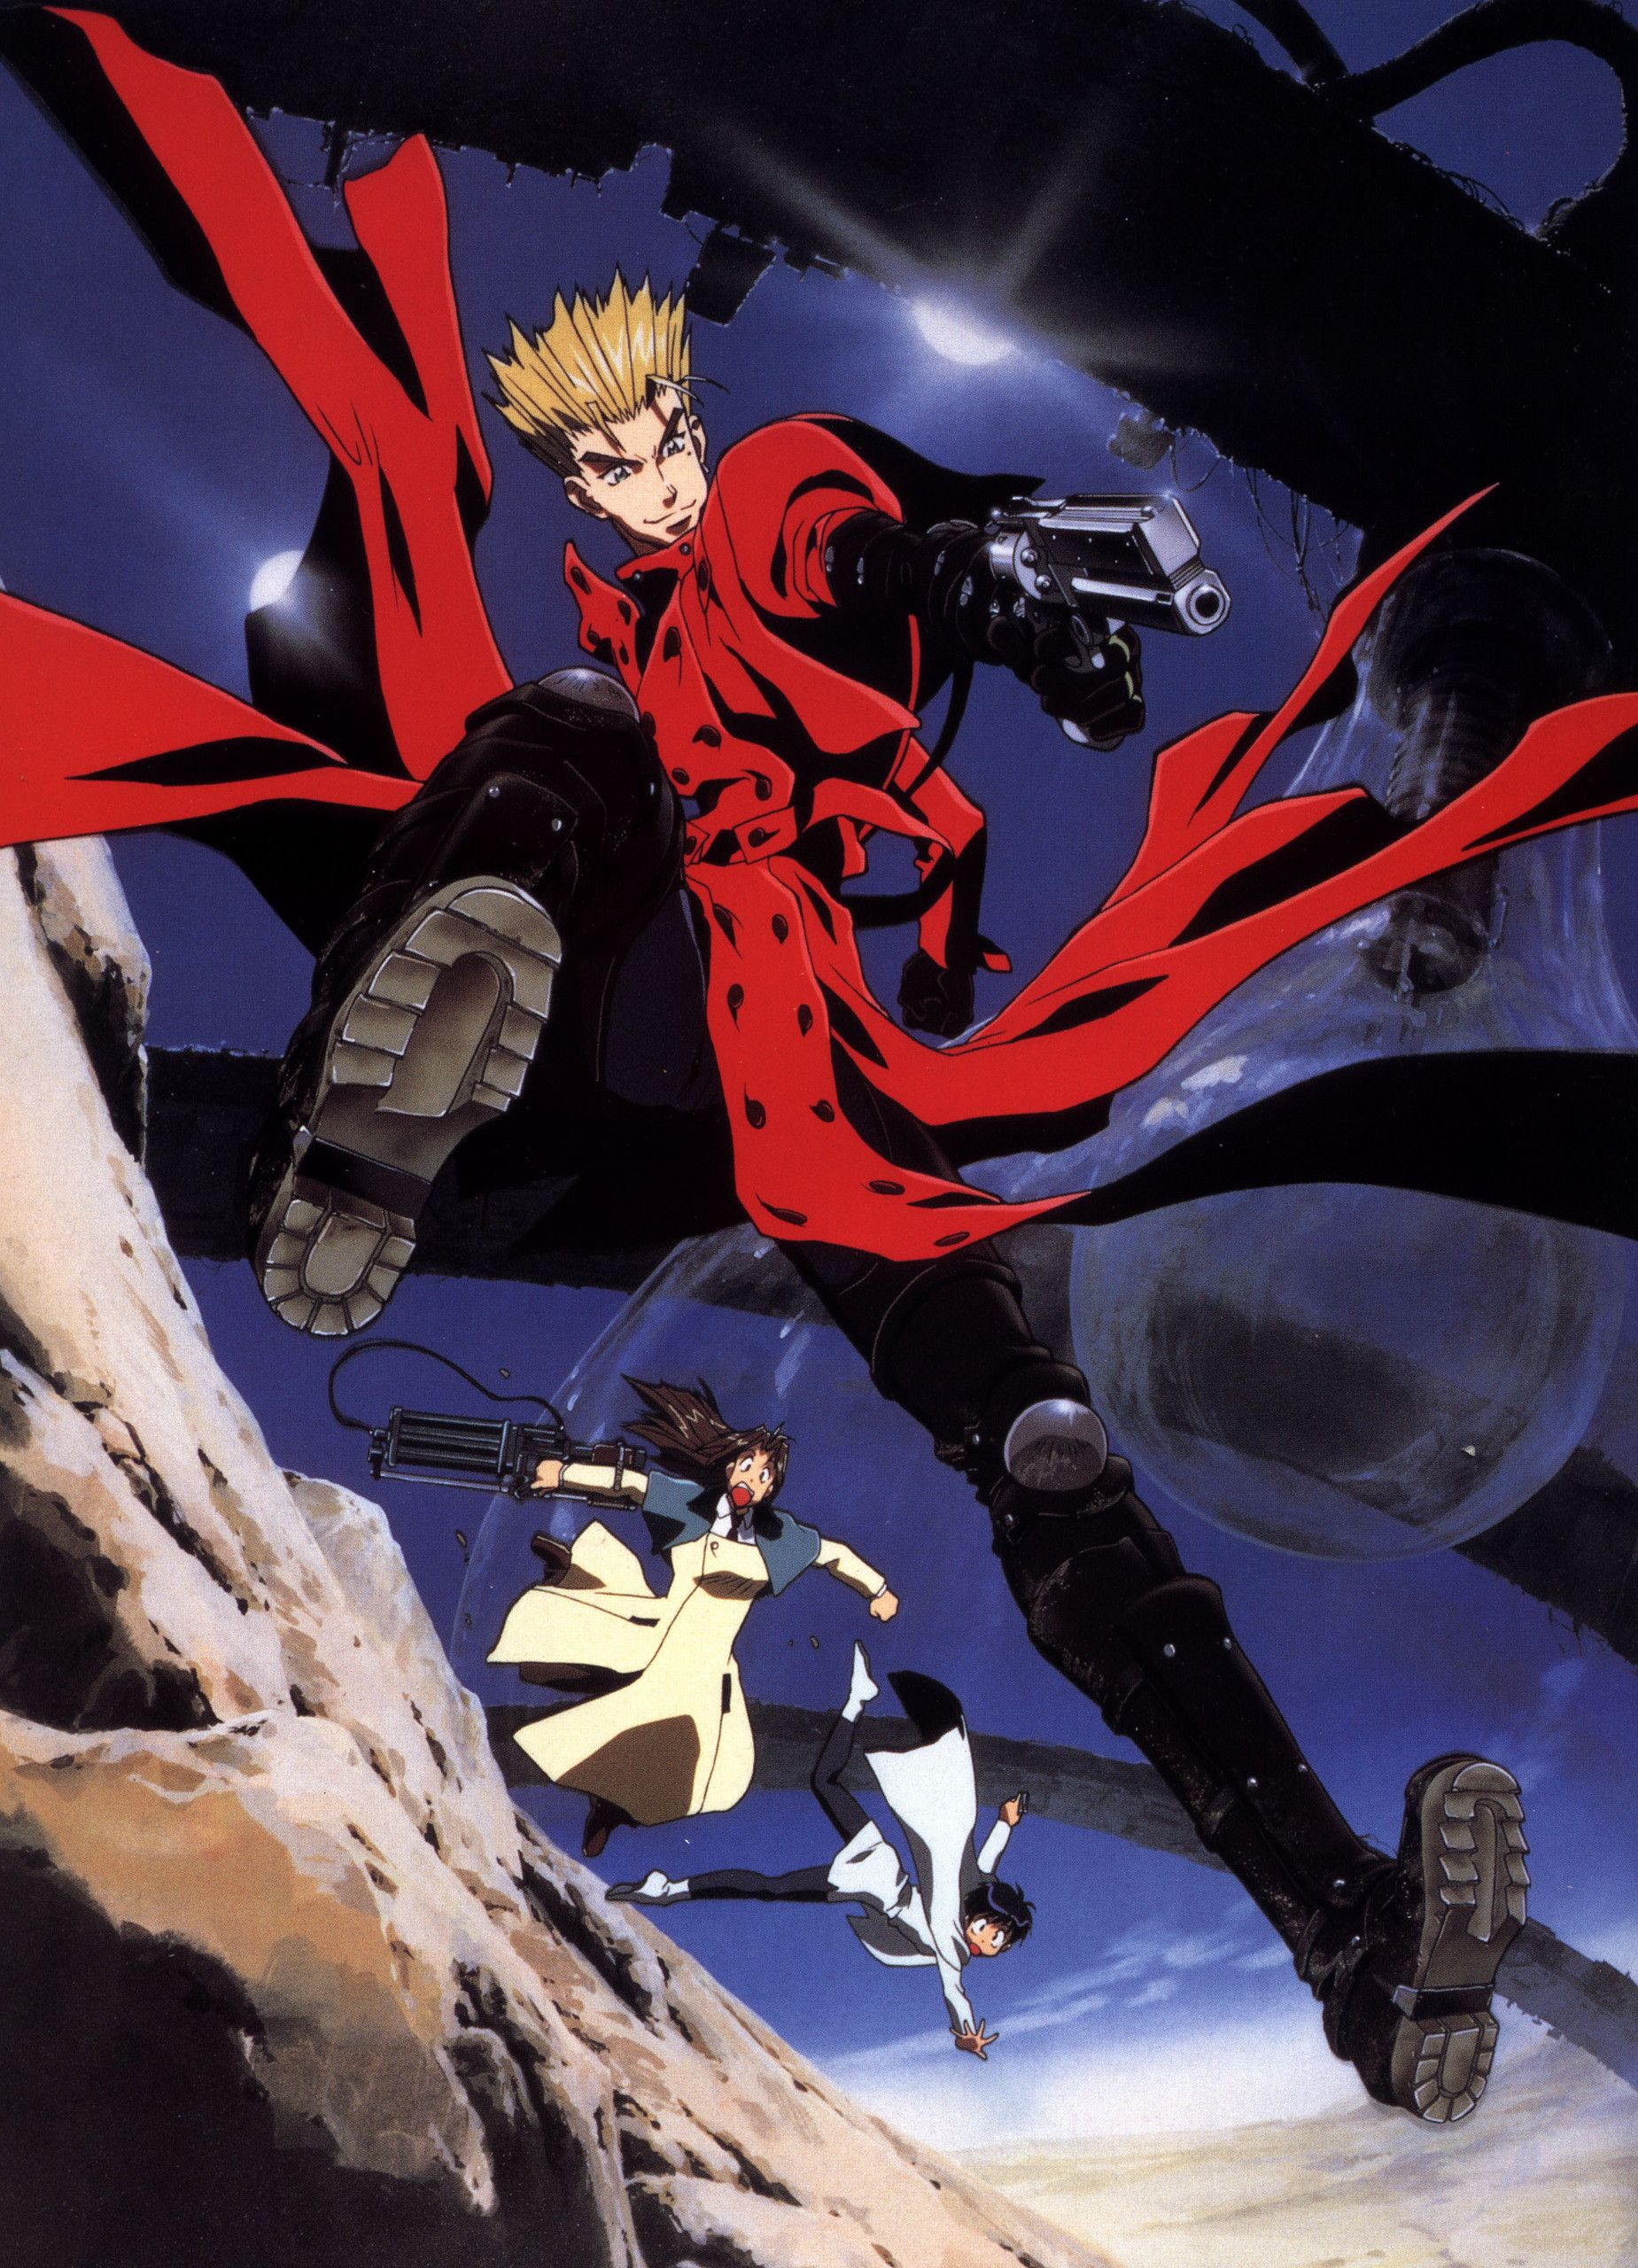 Res 1849x2560 Trigun Wallpaper For Android Trigun Anime Old Anime